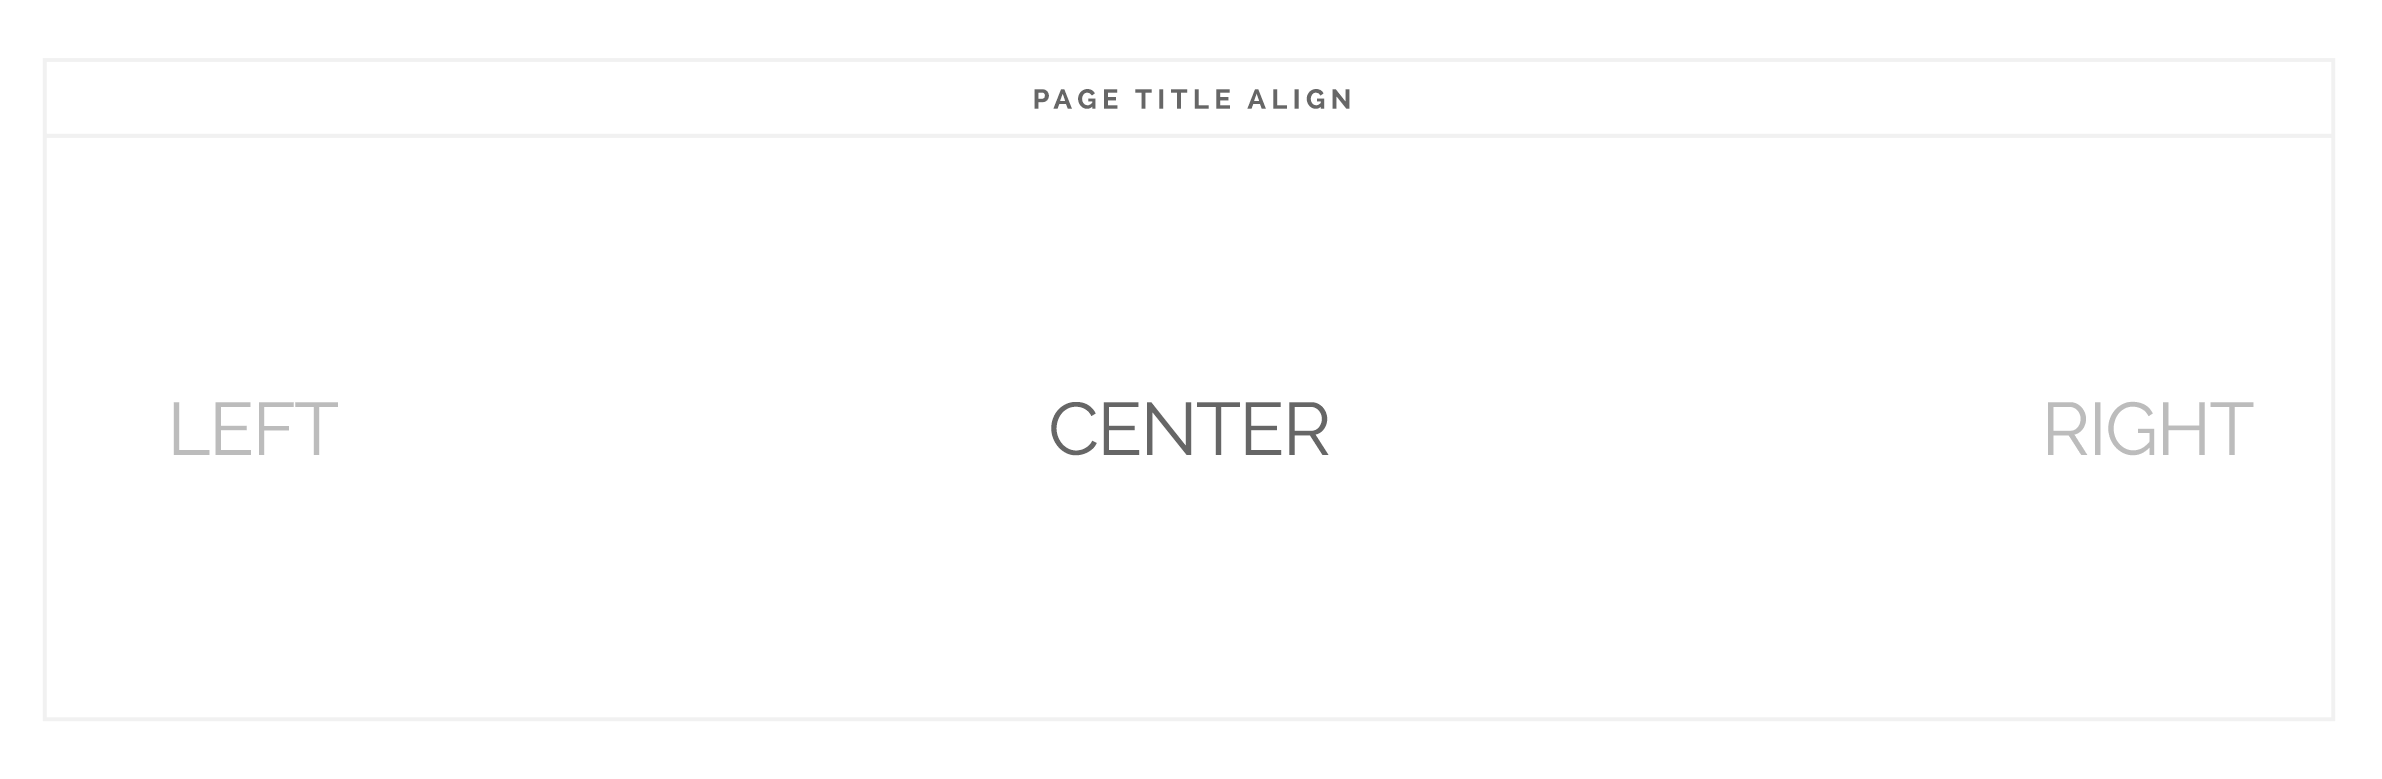 Page Title Alignment